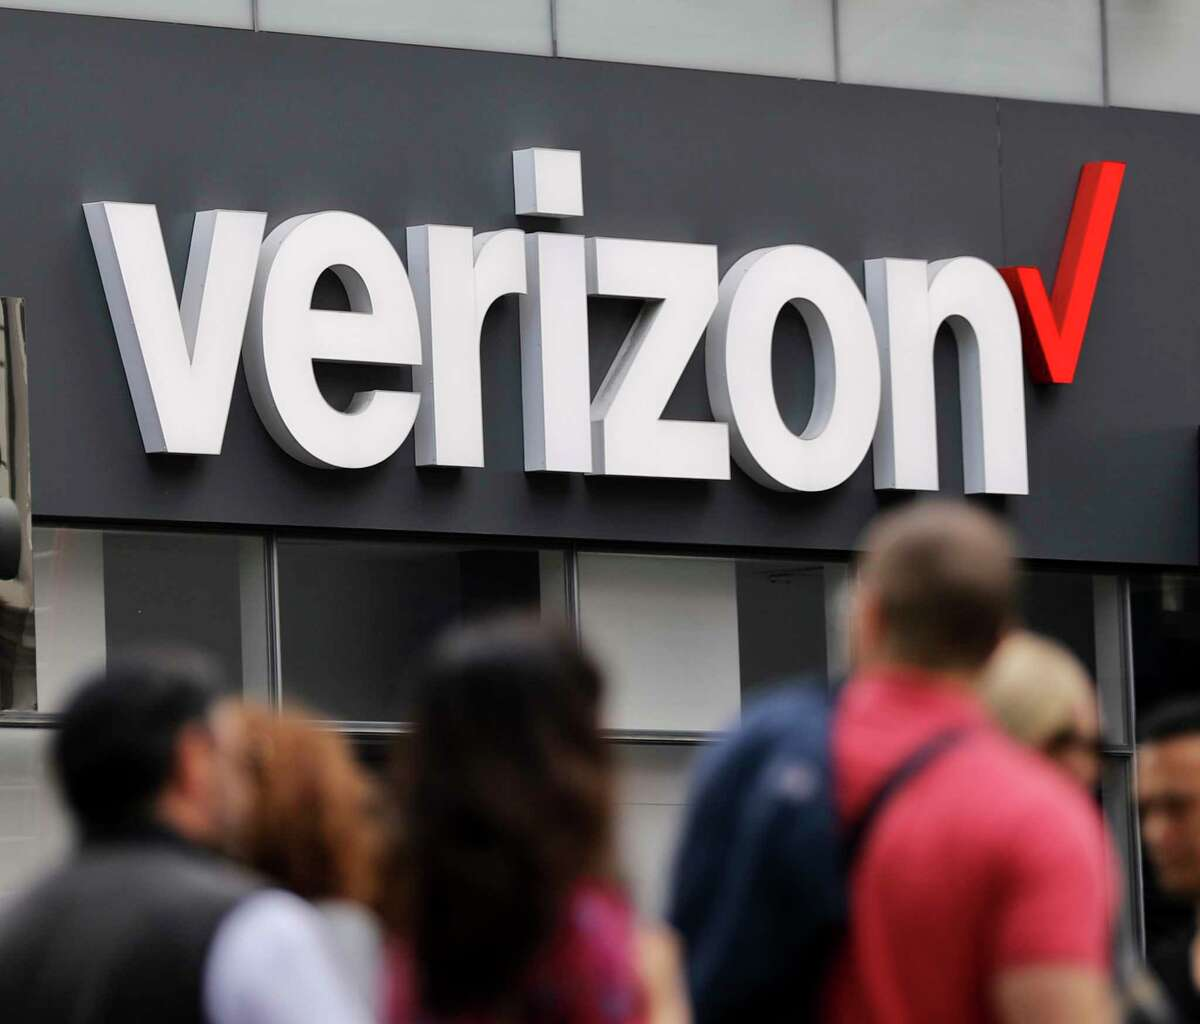 FILE- In this Tuesday, May 2, 2017, file photo, Verizon corporate signage is captured on a store in Manhattan's Midtown area, in New York. Verizon is pledging to stop selling data to outsiders through middlemen that can pinpoint the location of mobile phones, the Associated Press has learned. (AP Photo/Bebeto Matthews, File)